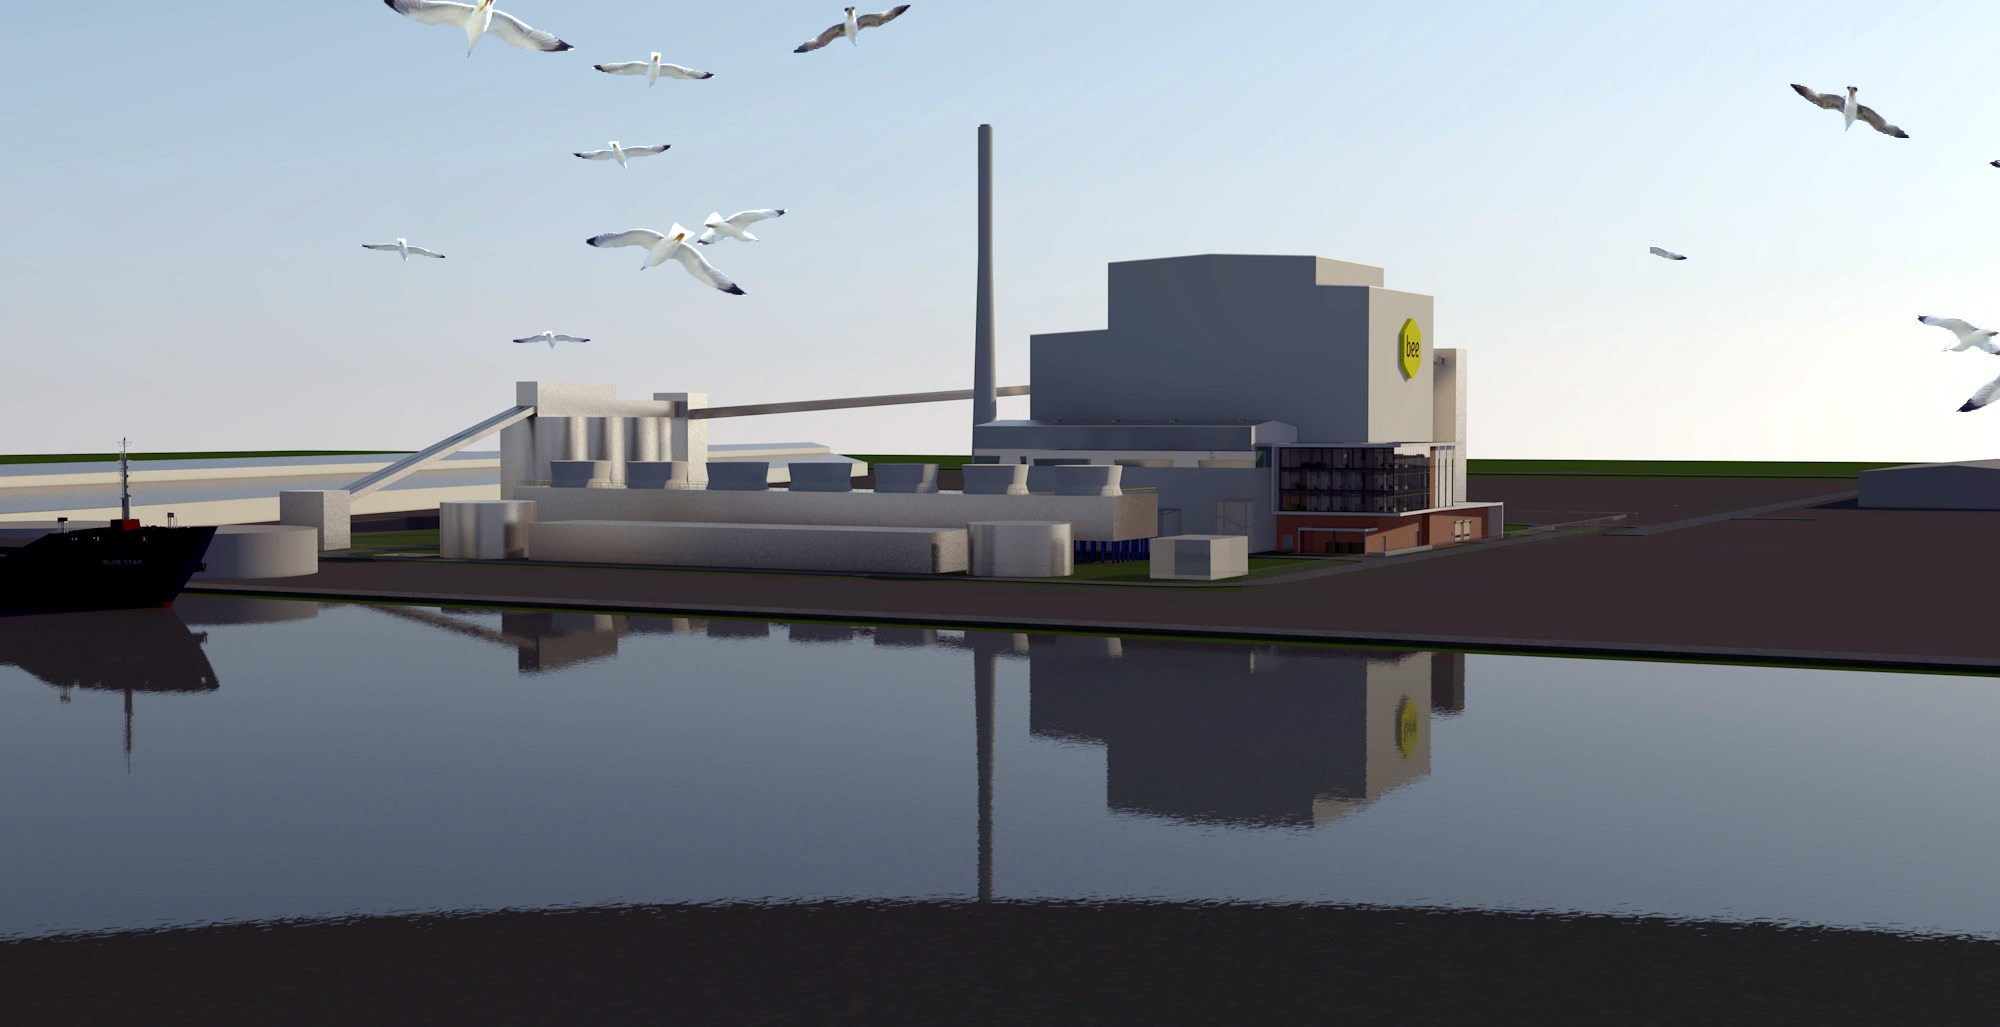 GE Chosen to Build World's Largest Commercial Biomass-Fired